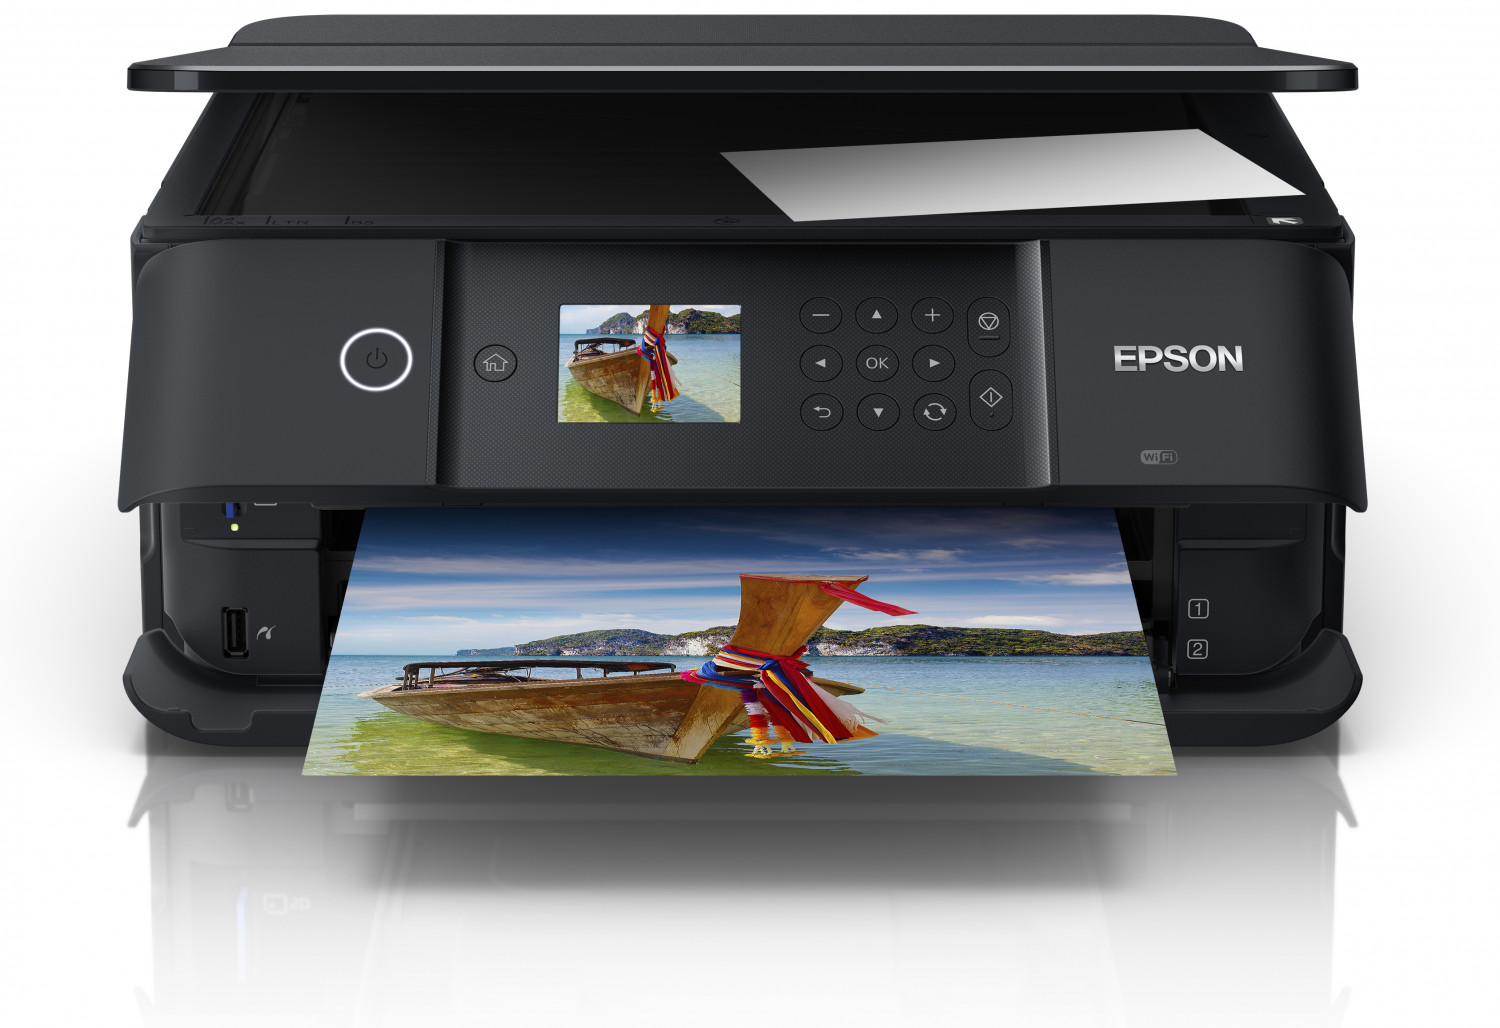 Epson XP6100 A4 Colour Inkjet Wifi Printer